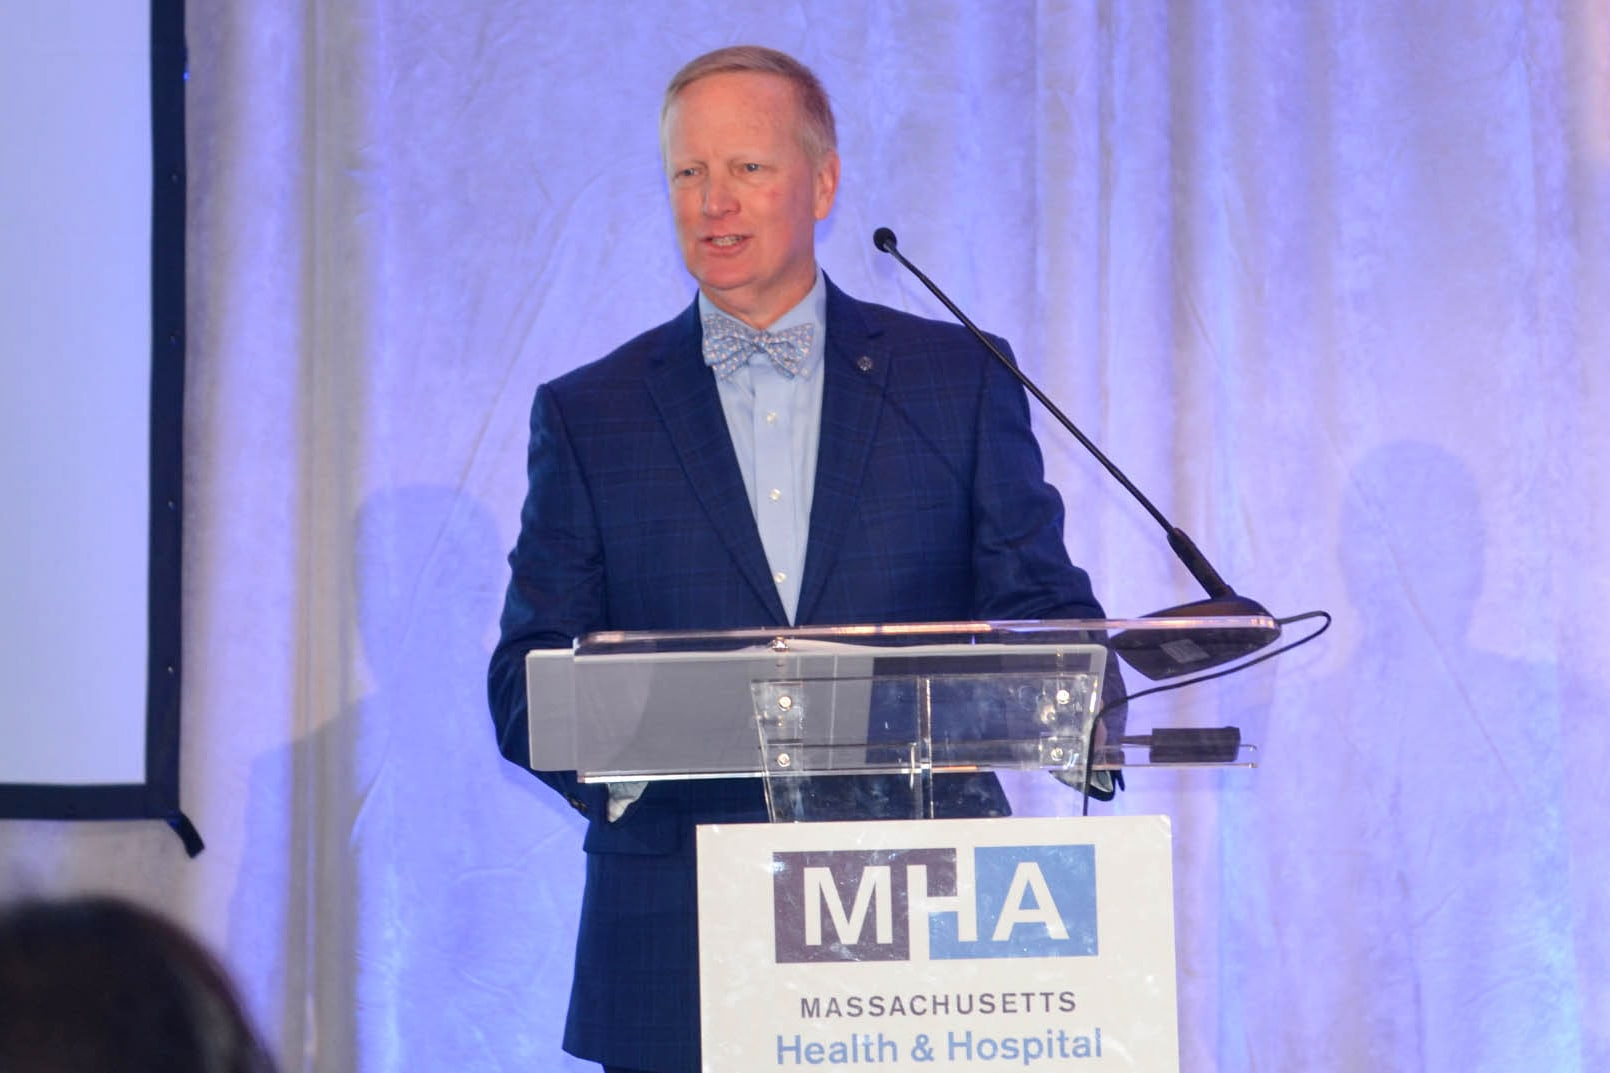 Jody White to Chair Massachusetts Health & Hospital Association Board of Trustees